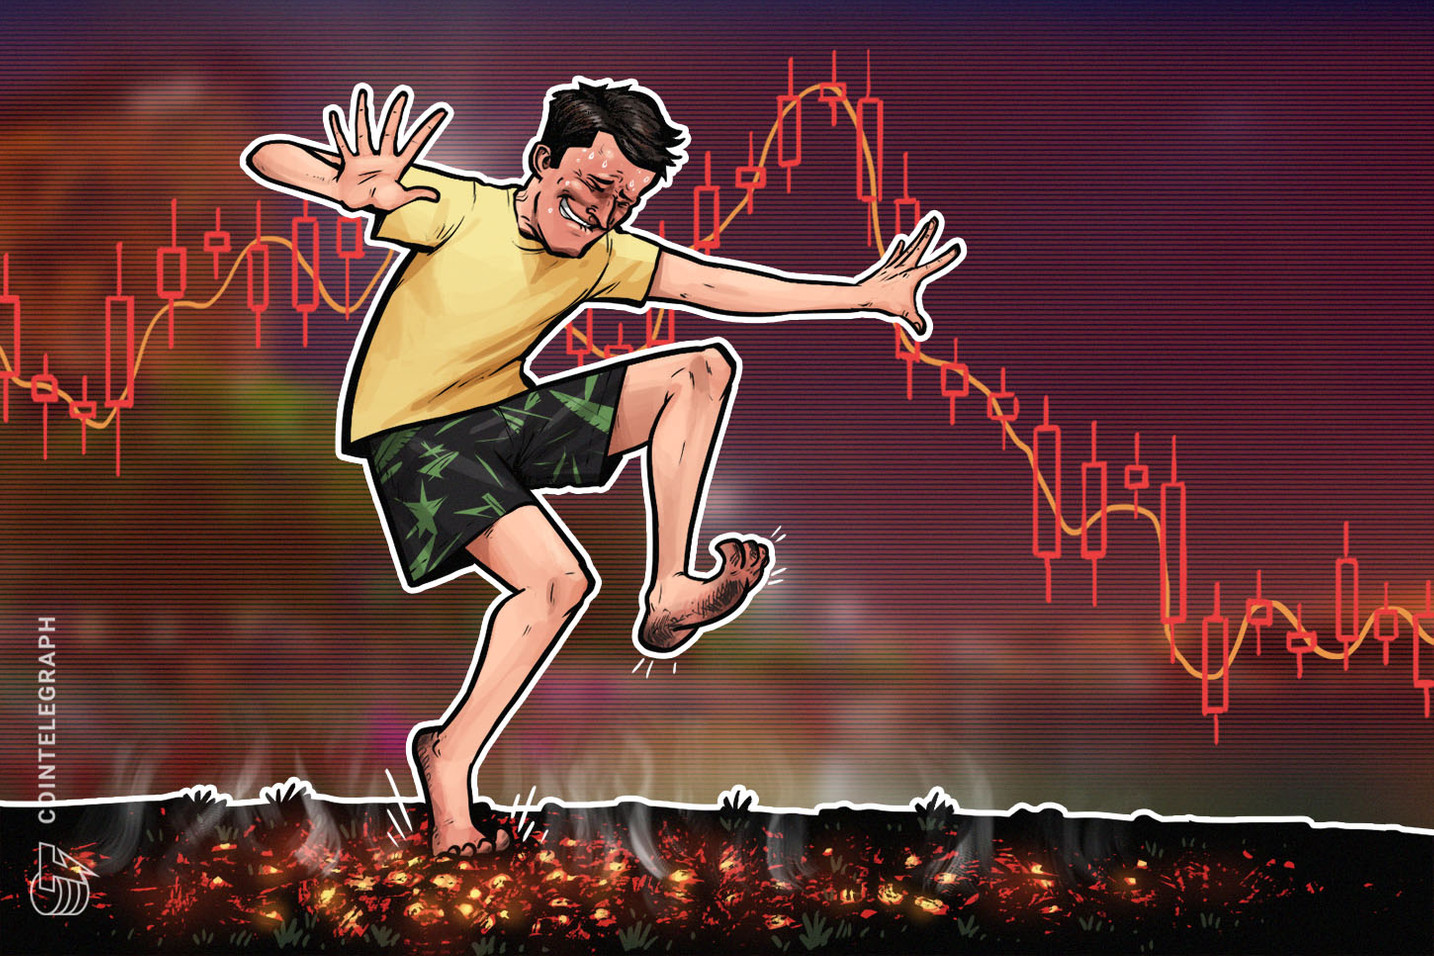 Crypto Markets See Double-Digit Crash, Asian Markets Soar as Trump Delays Tariff Hike